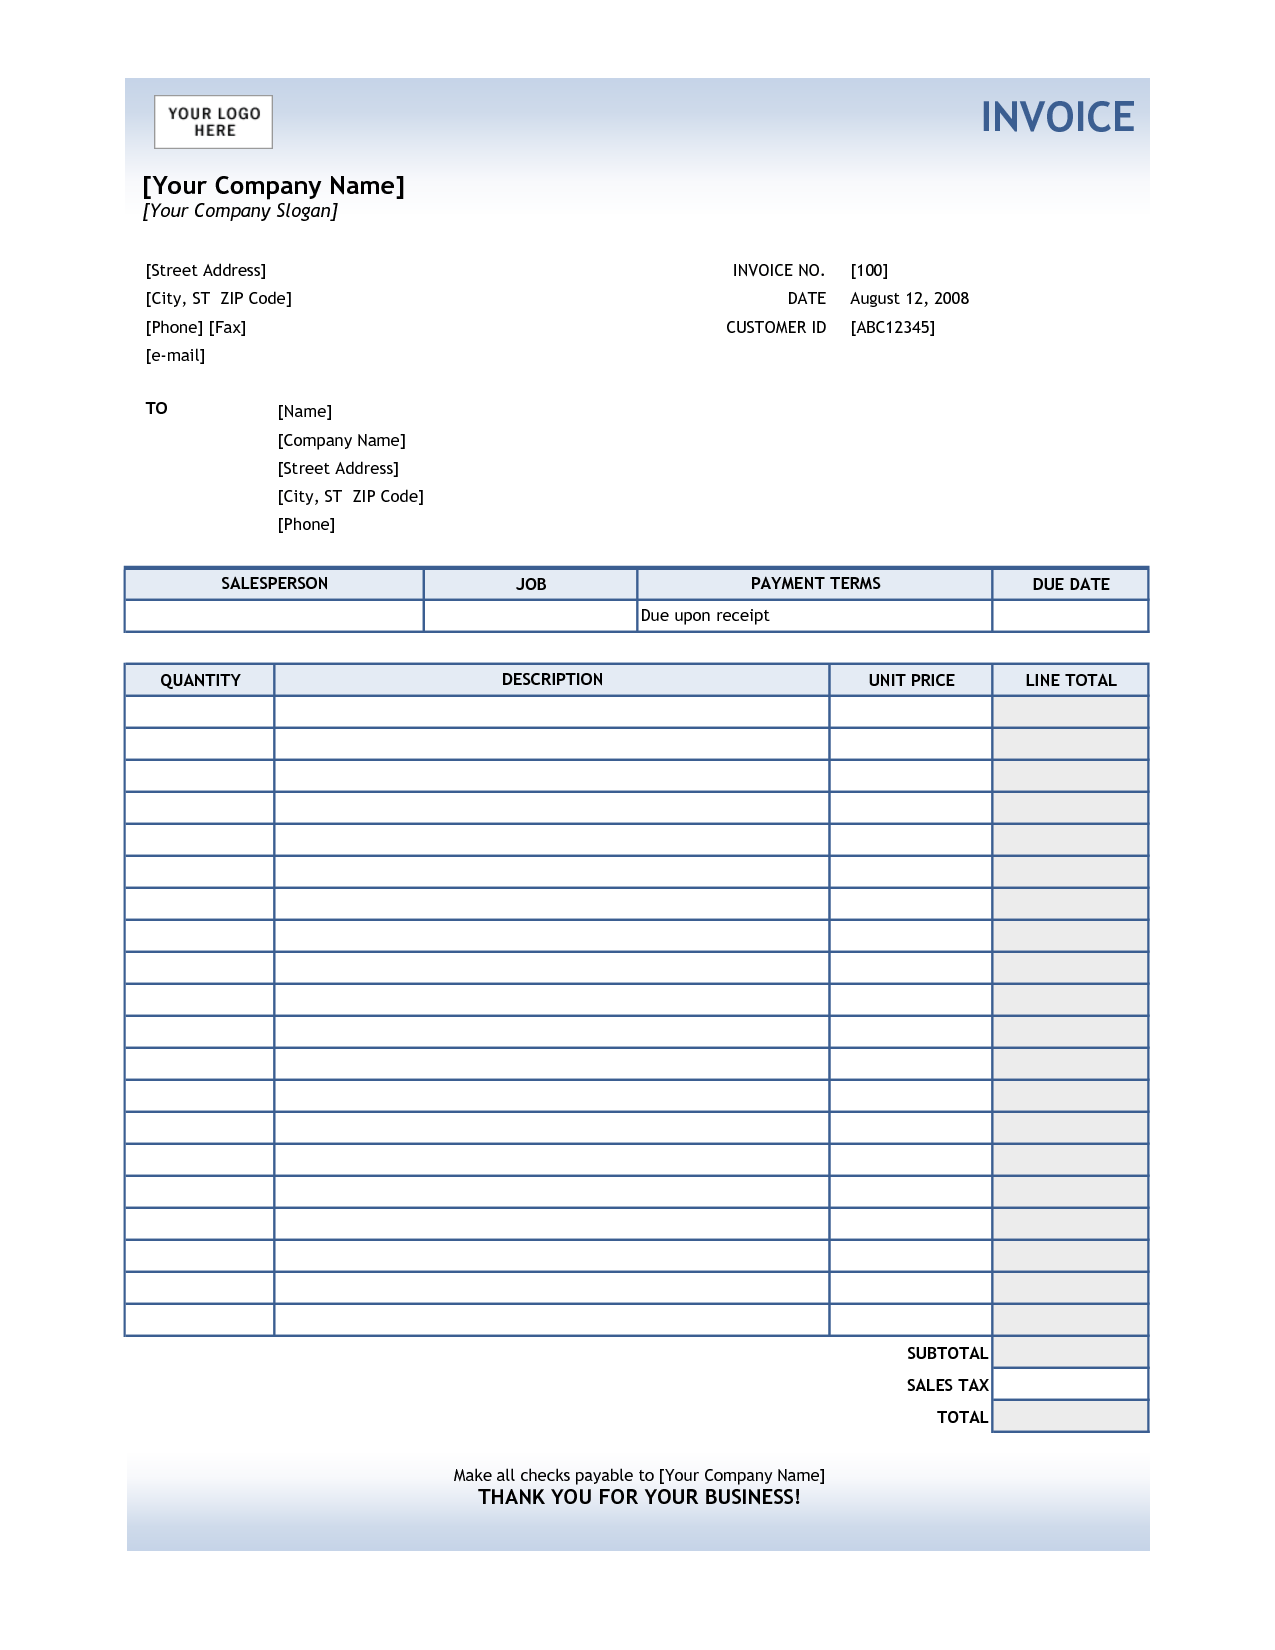 Monthly Bill Template Free and 100 Po Excel Template Export Purchase order Data to Ms Excel